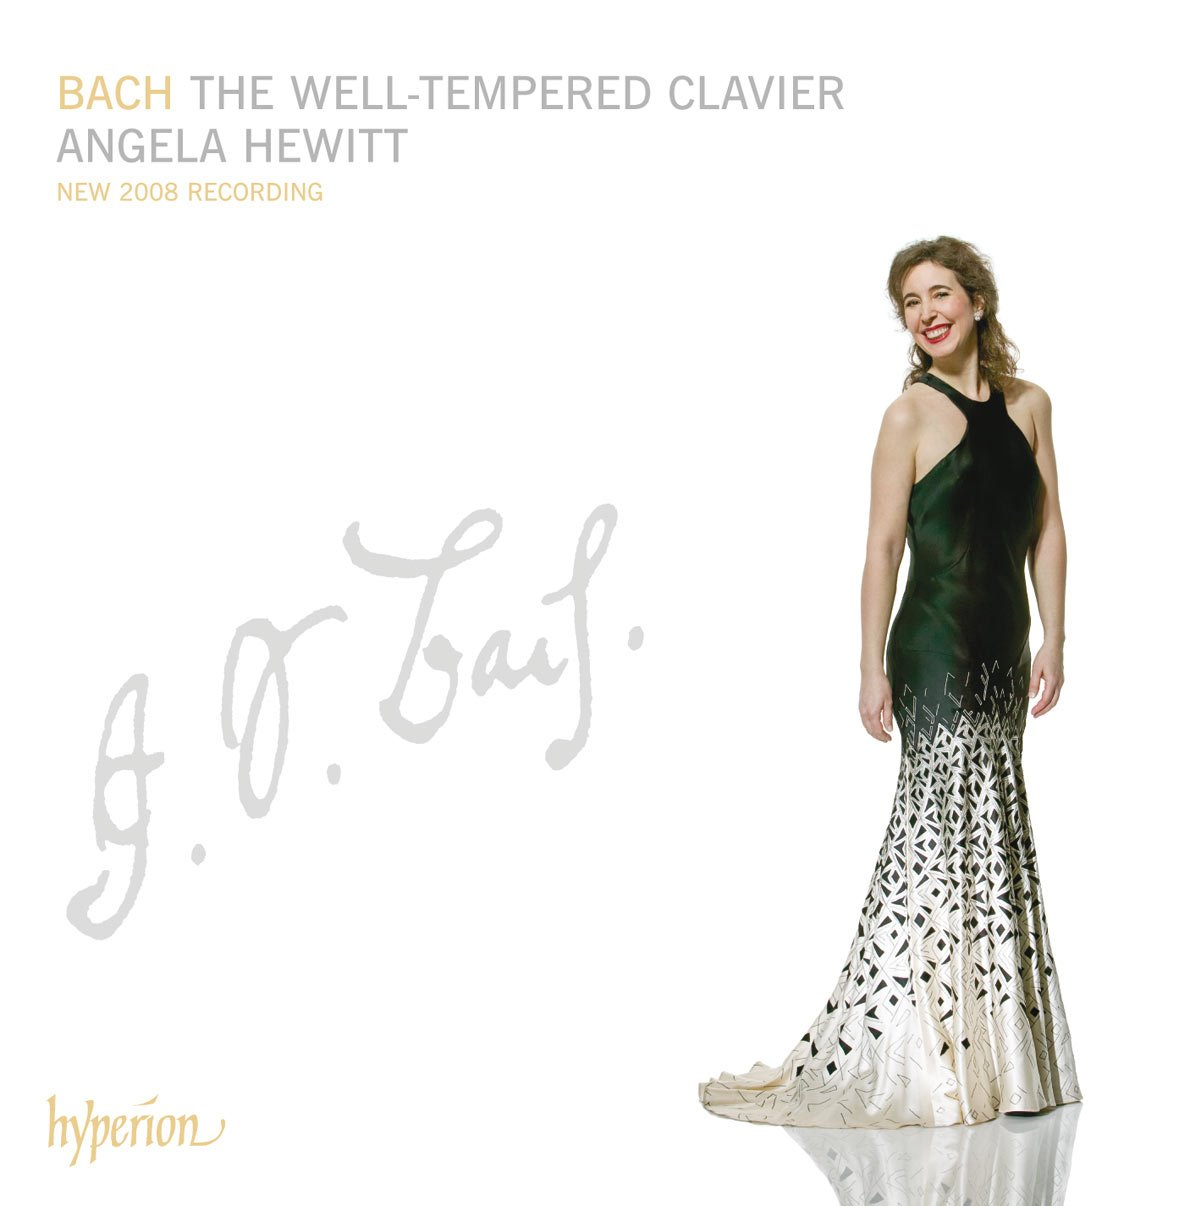 Bach: The Directly managed ! Super beauty product restock quality top! store Well-Tempered Clavier